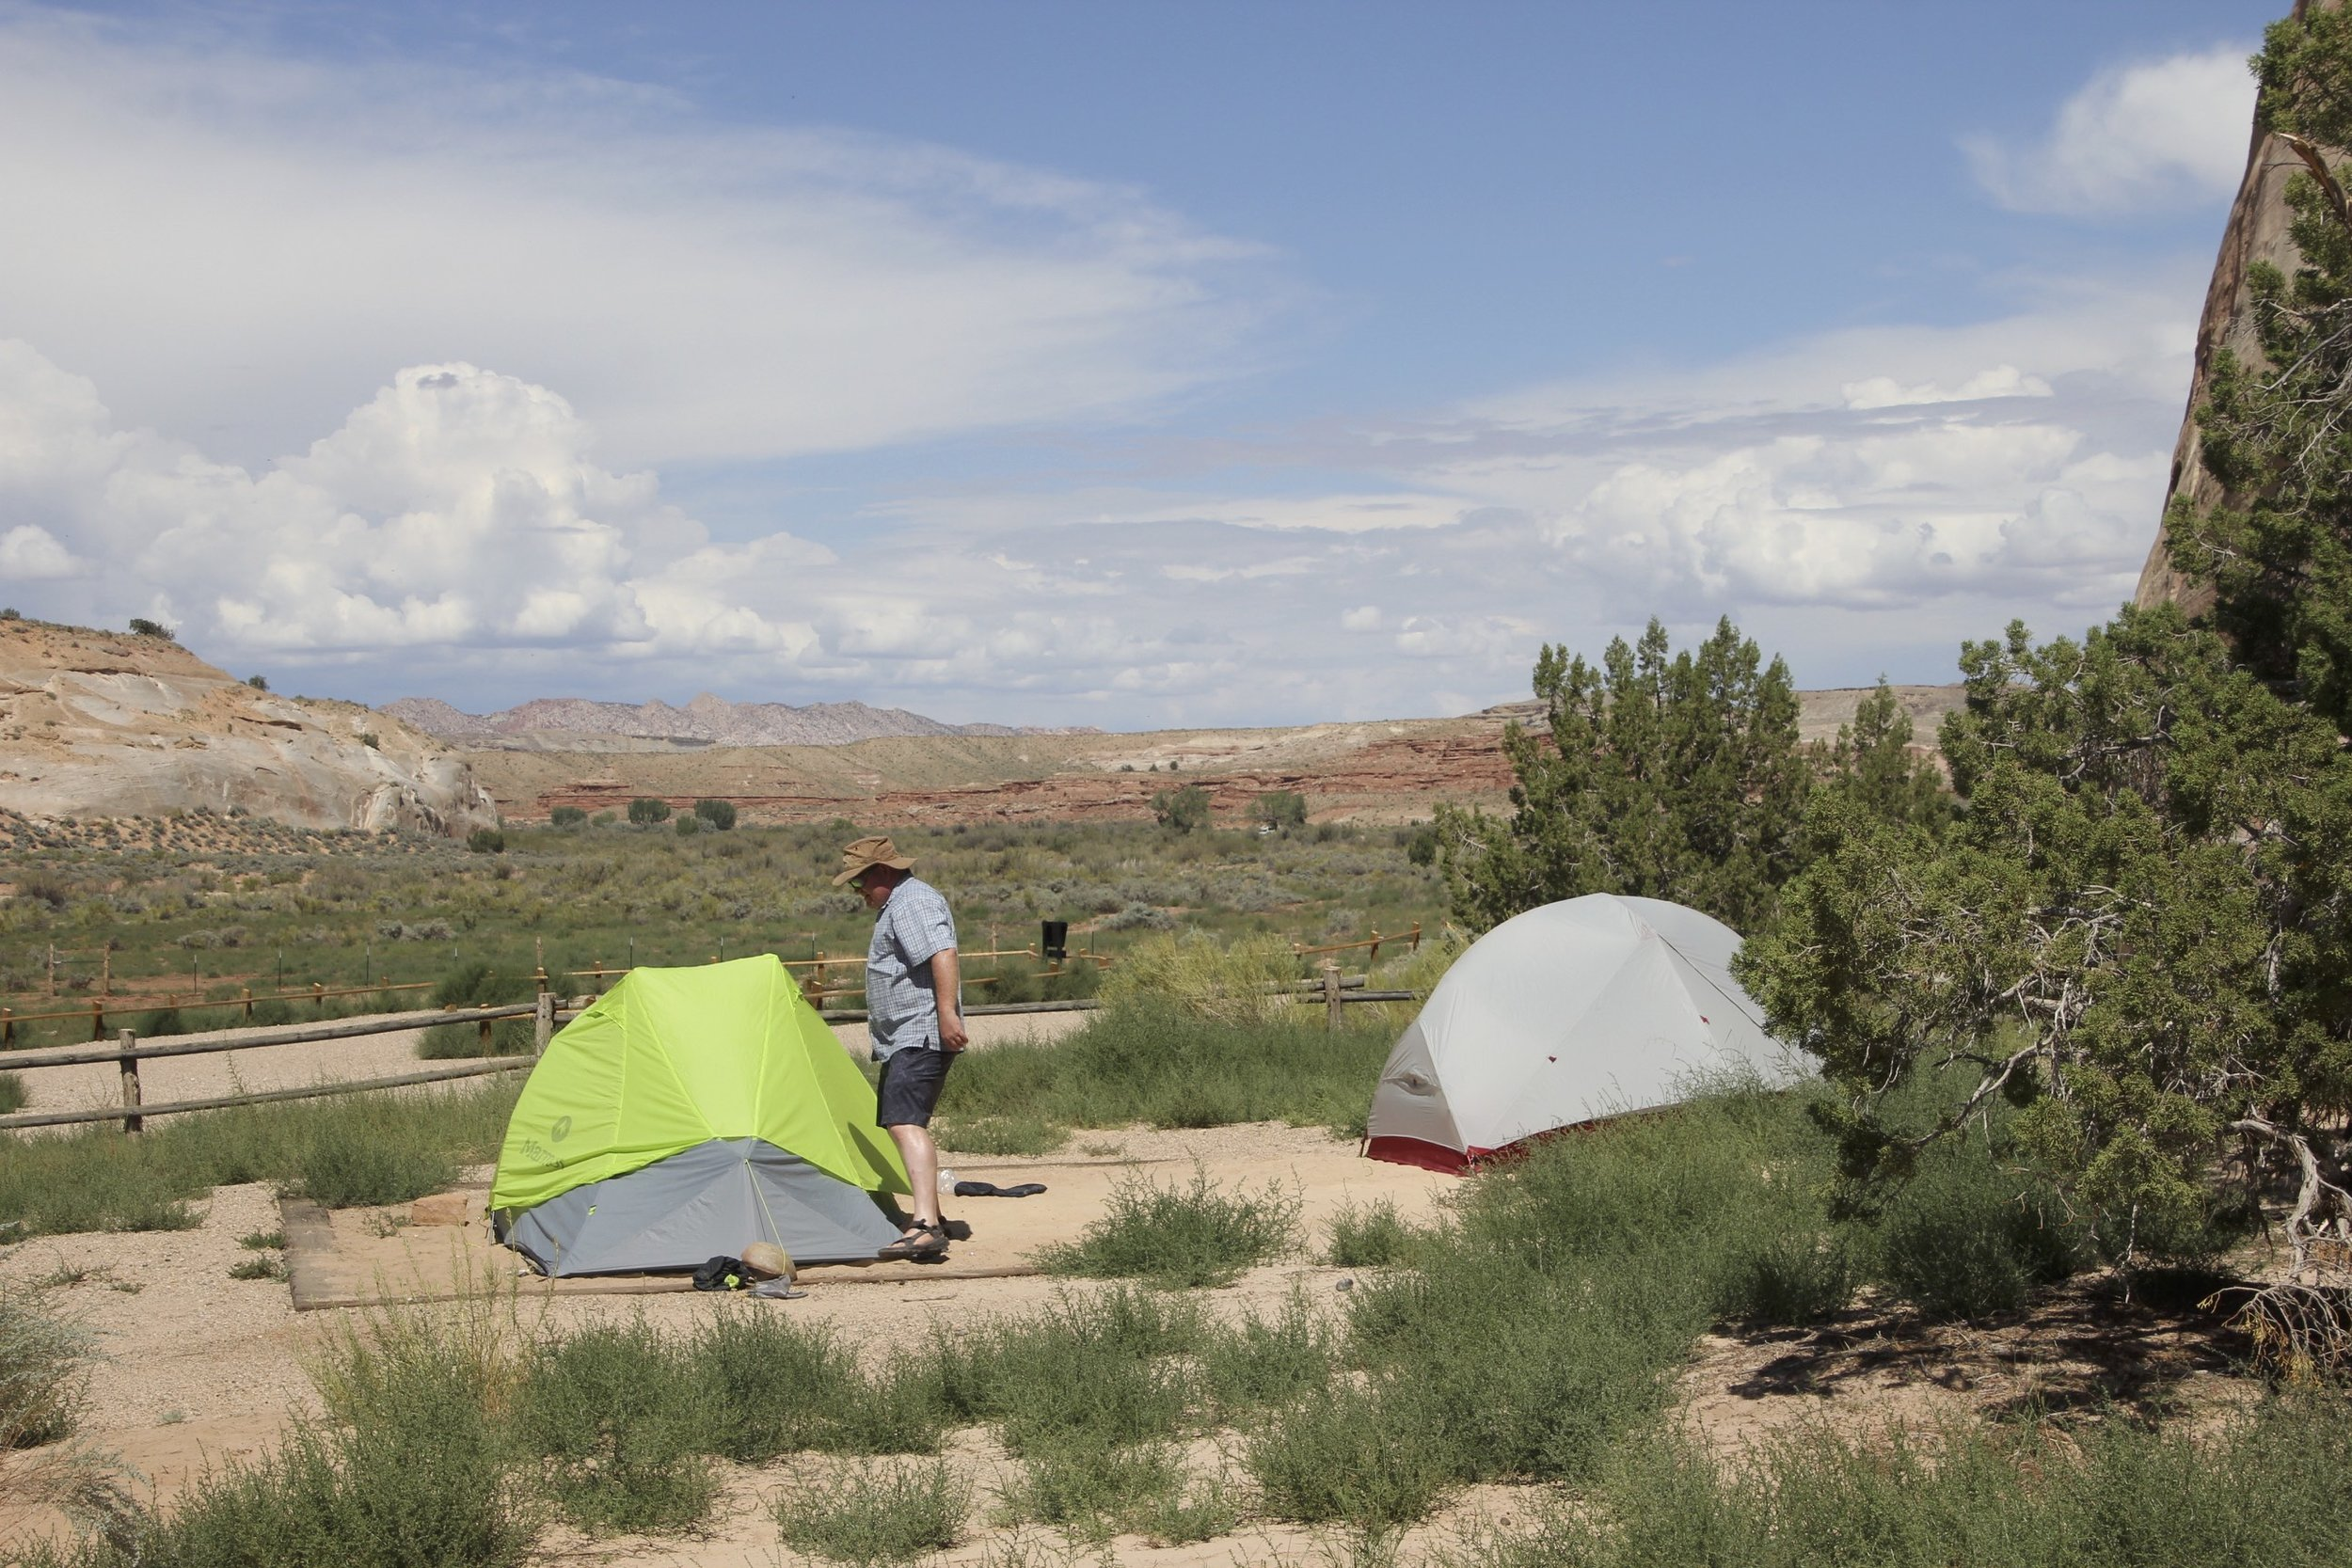 The Whitehouse campsite run by the BLM